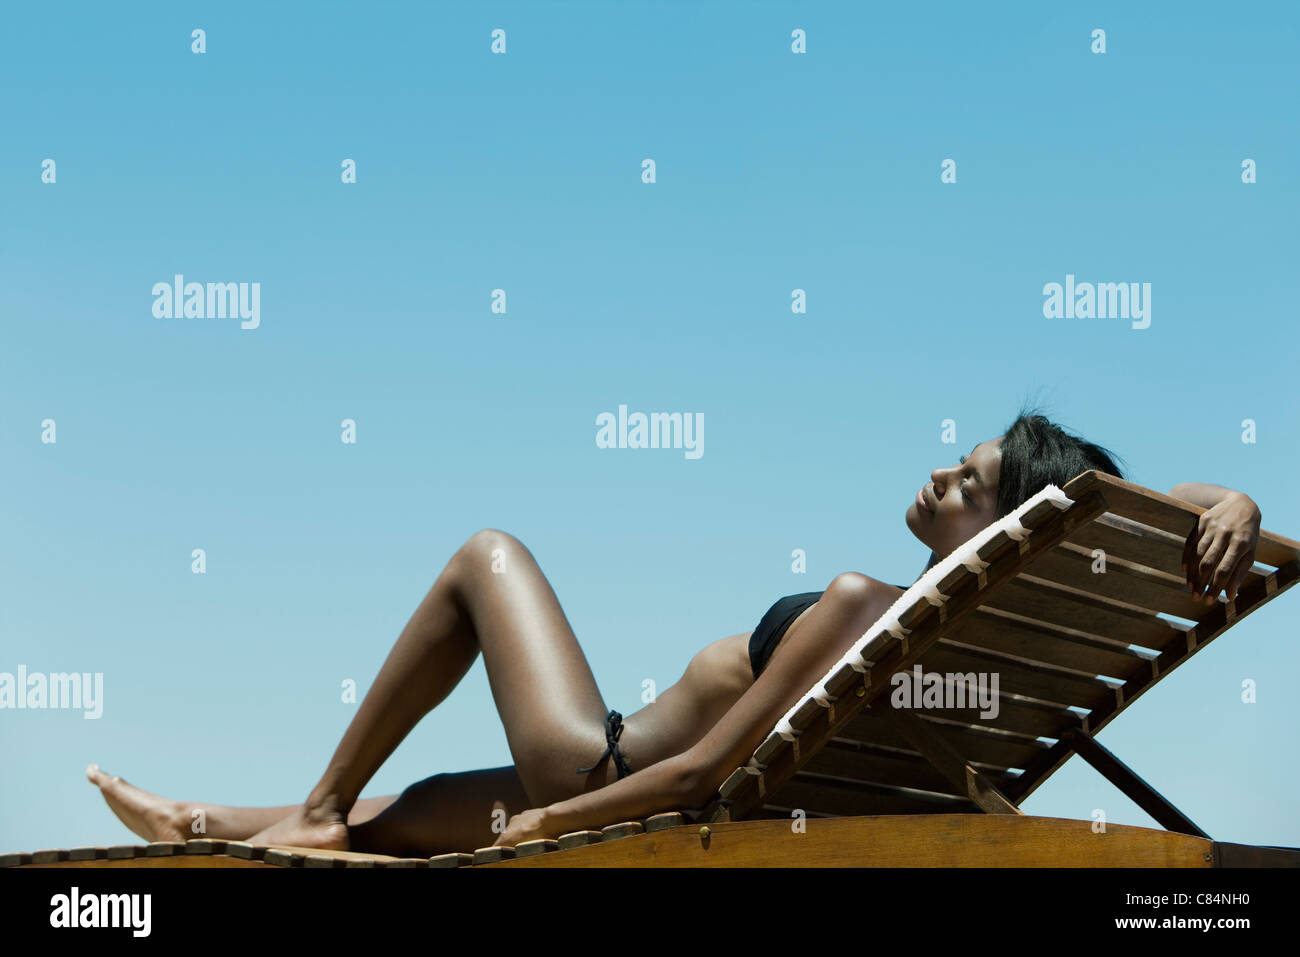 Woman relaxing on deckchair in sun - Stock Image